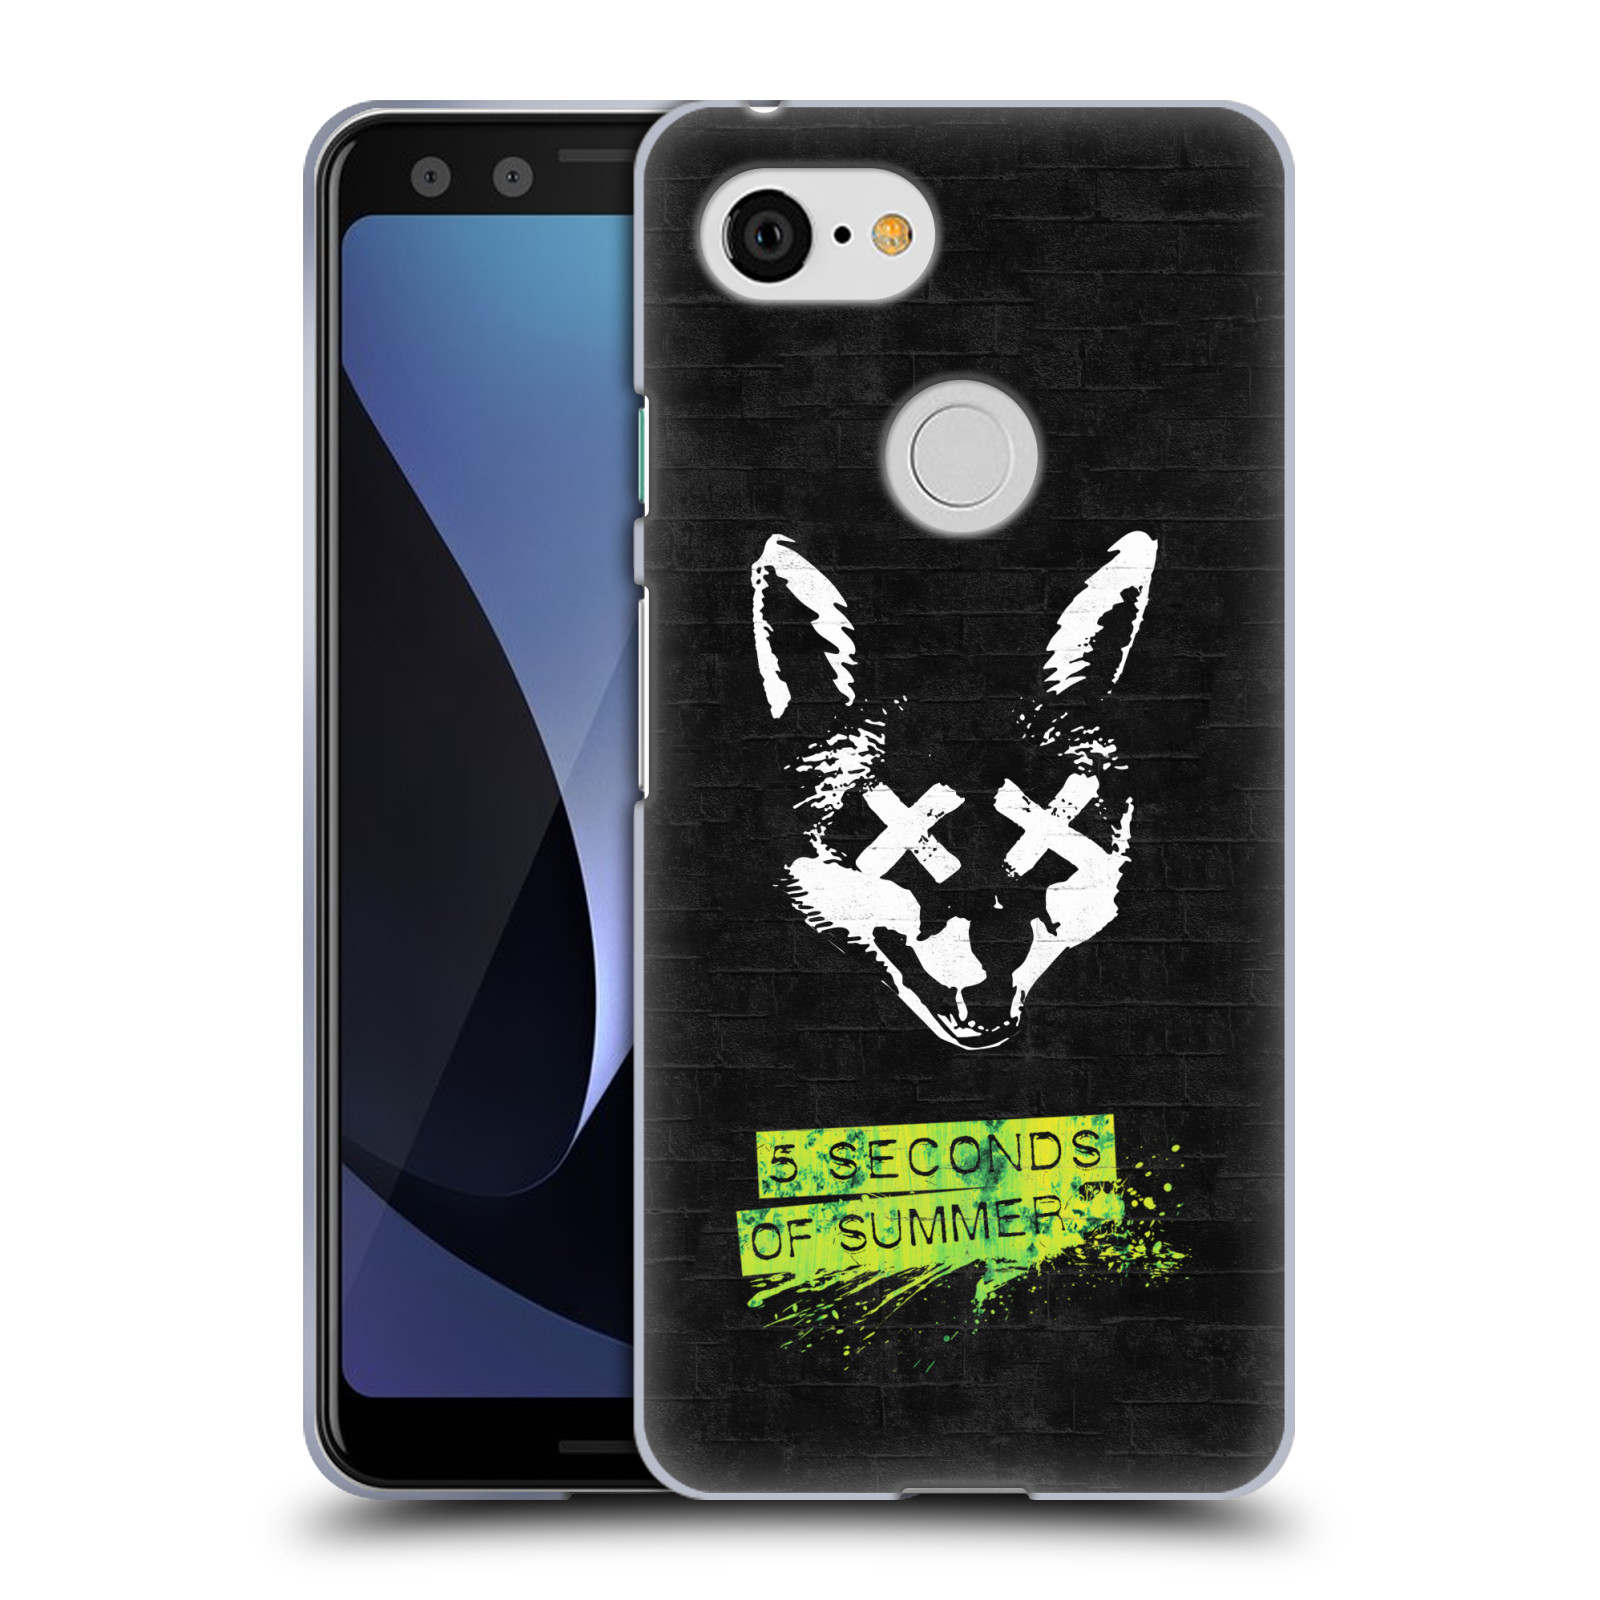 Silikonové pouzdro na mobil Google Pixel 3 - Head Case - 5 Seconds of Summer - Fox